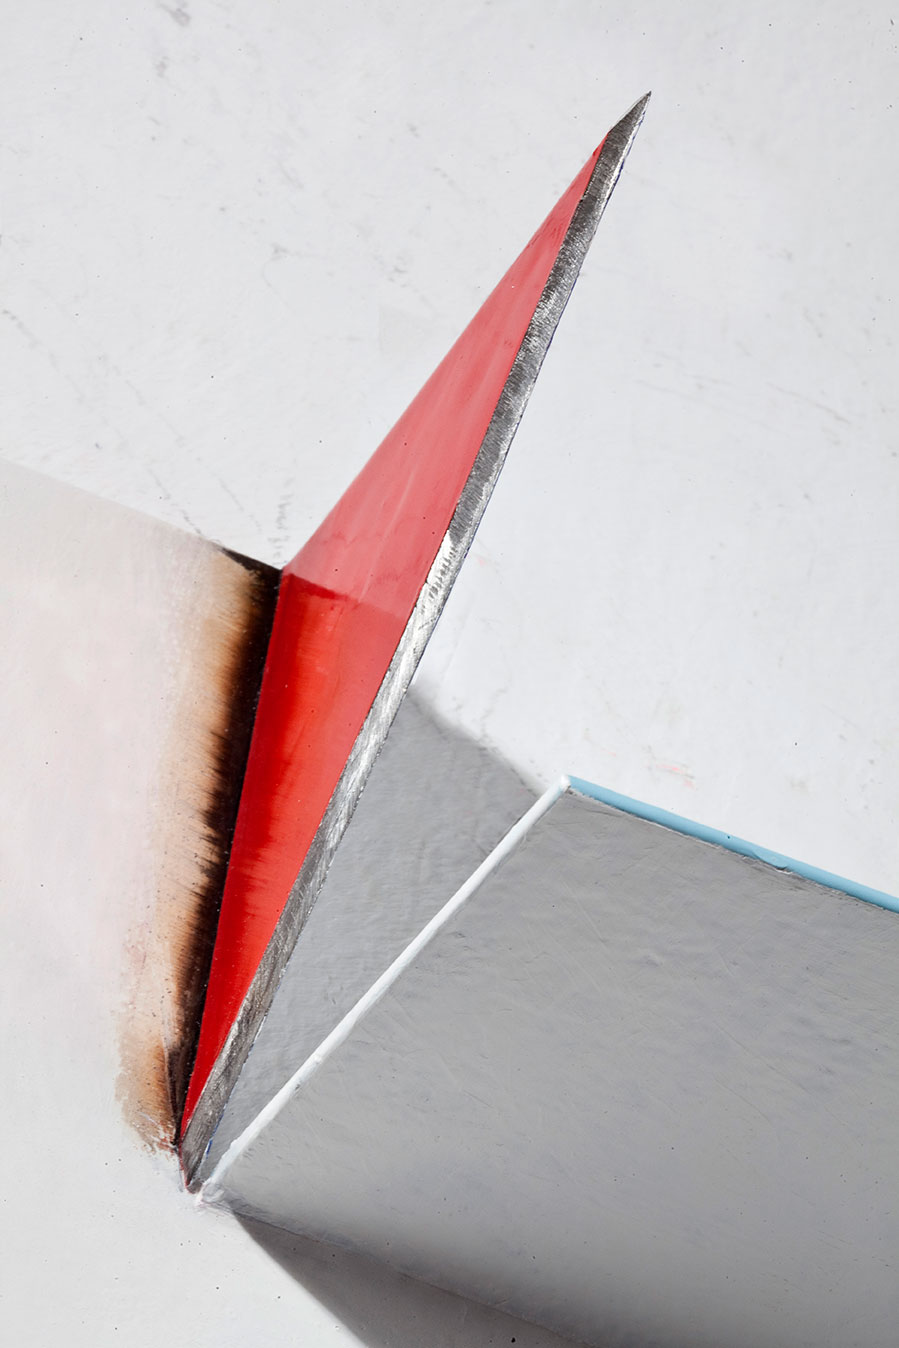 7.%22I'm not complaining, I'm resting%22, 2015_acrylic and epoxi color on metal sheet,110x100cm_detail4.jpg